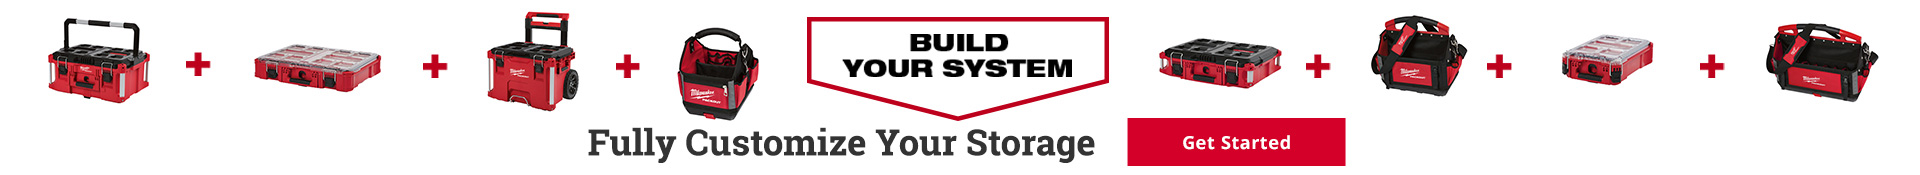 Fully customize your storage - Shop Now